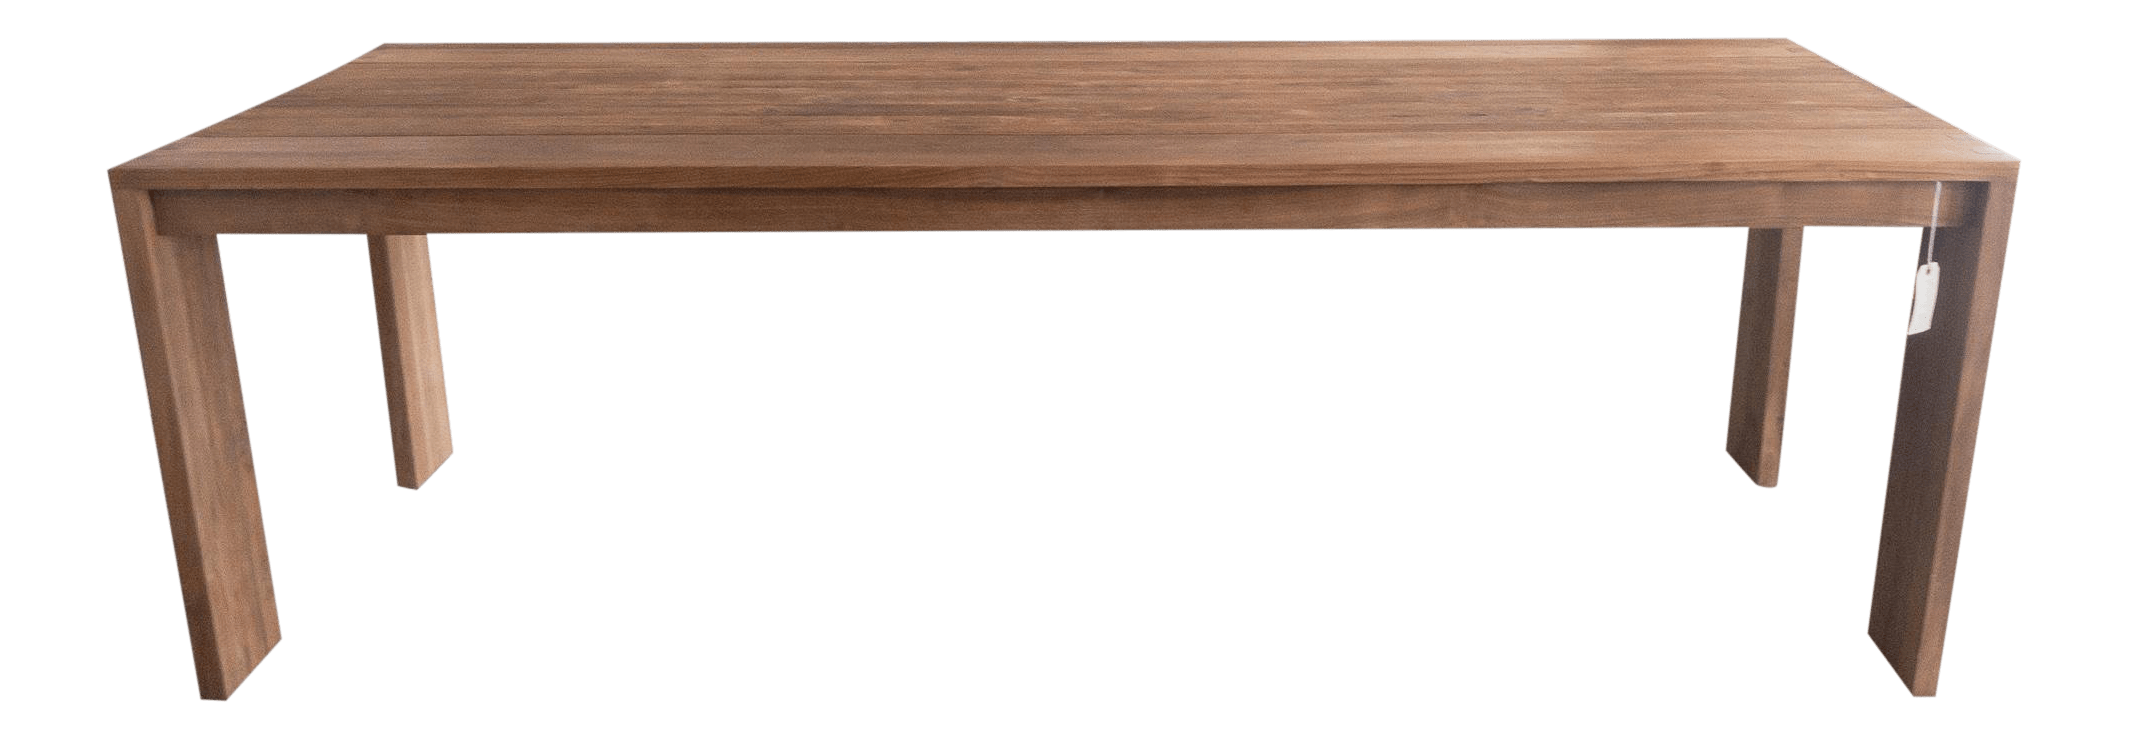 Teak Liege Roost Liege Teak Dining Table